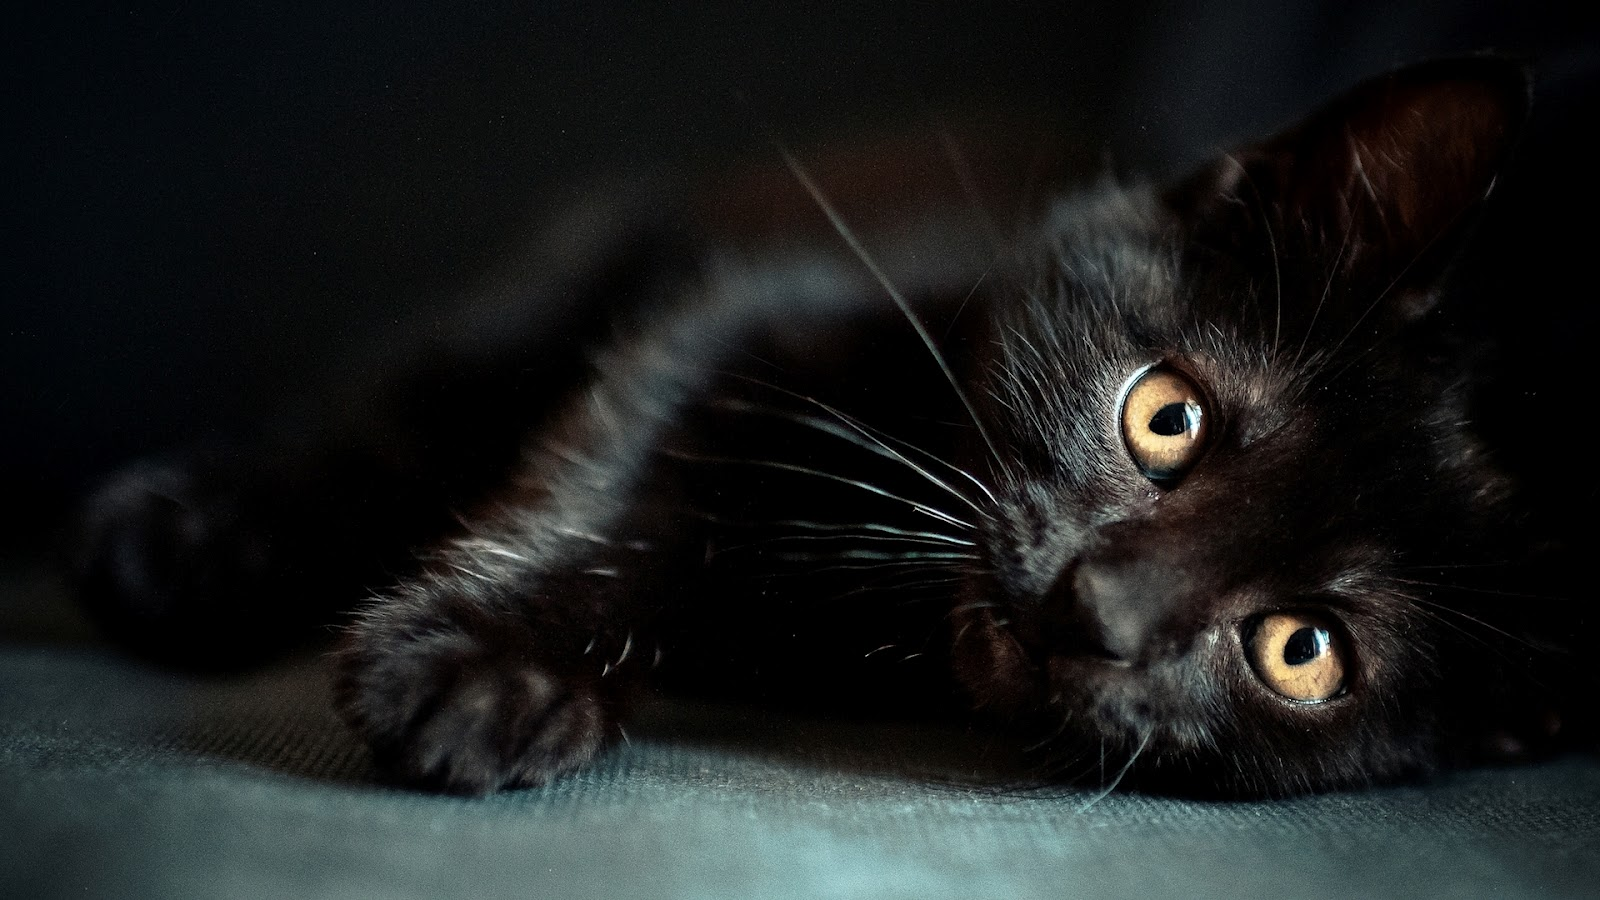 Images Of Cute Baby Cats Wallpaper Backgrounds Of Black Cats 1600x900 Wallpaper Teahub Io